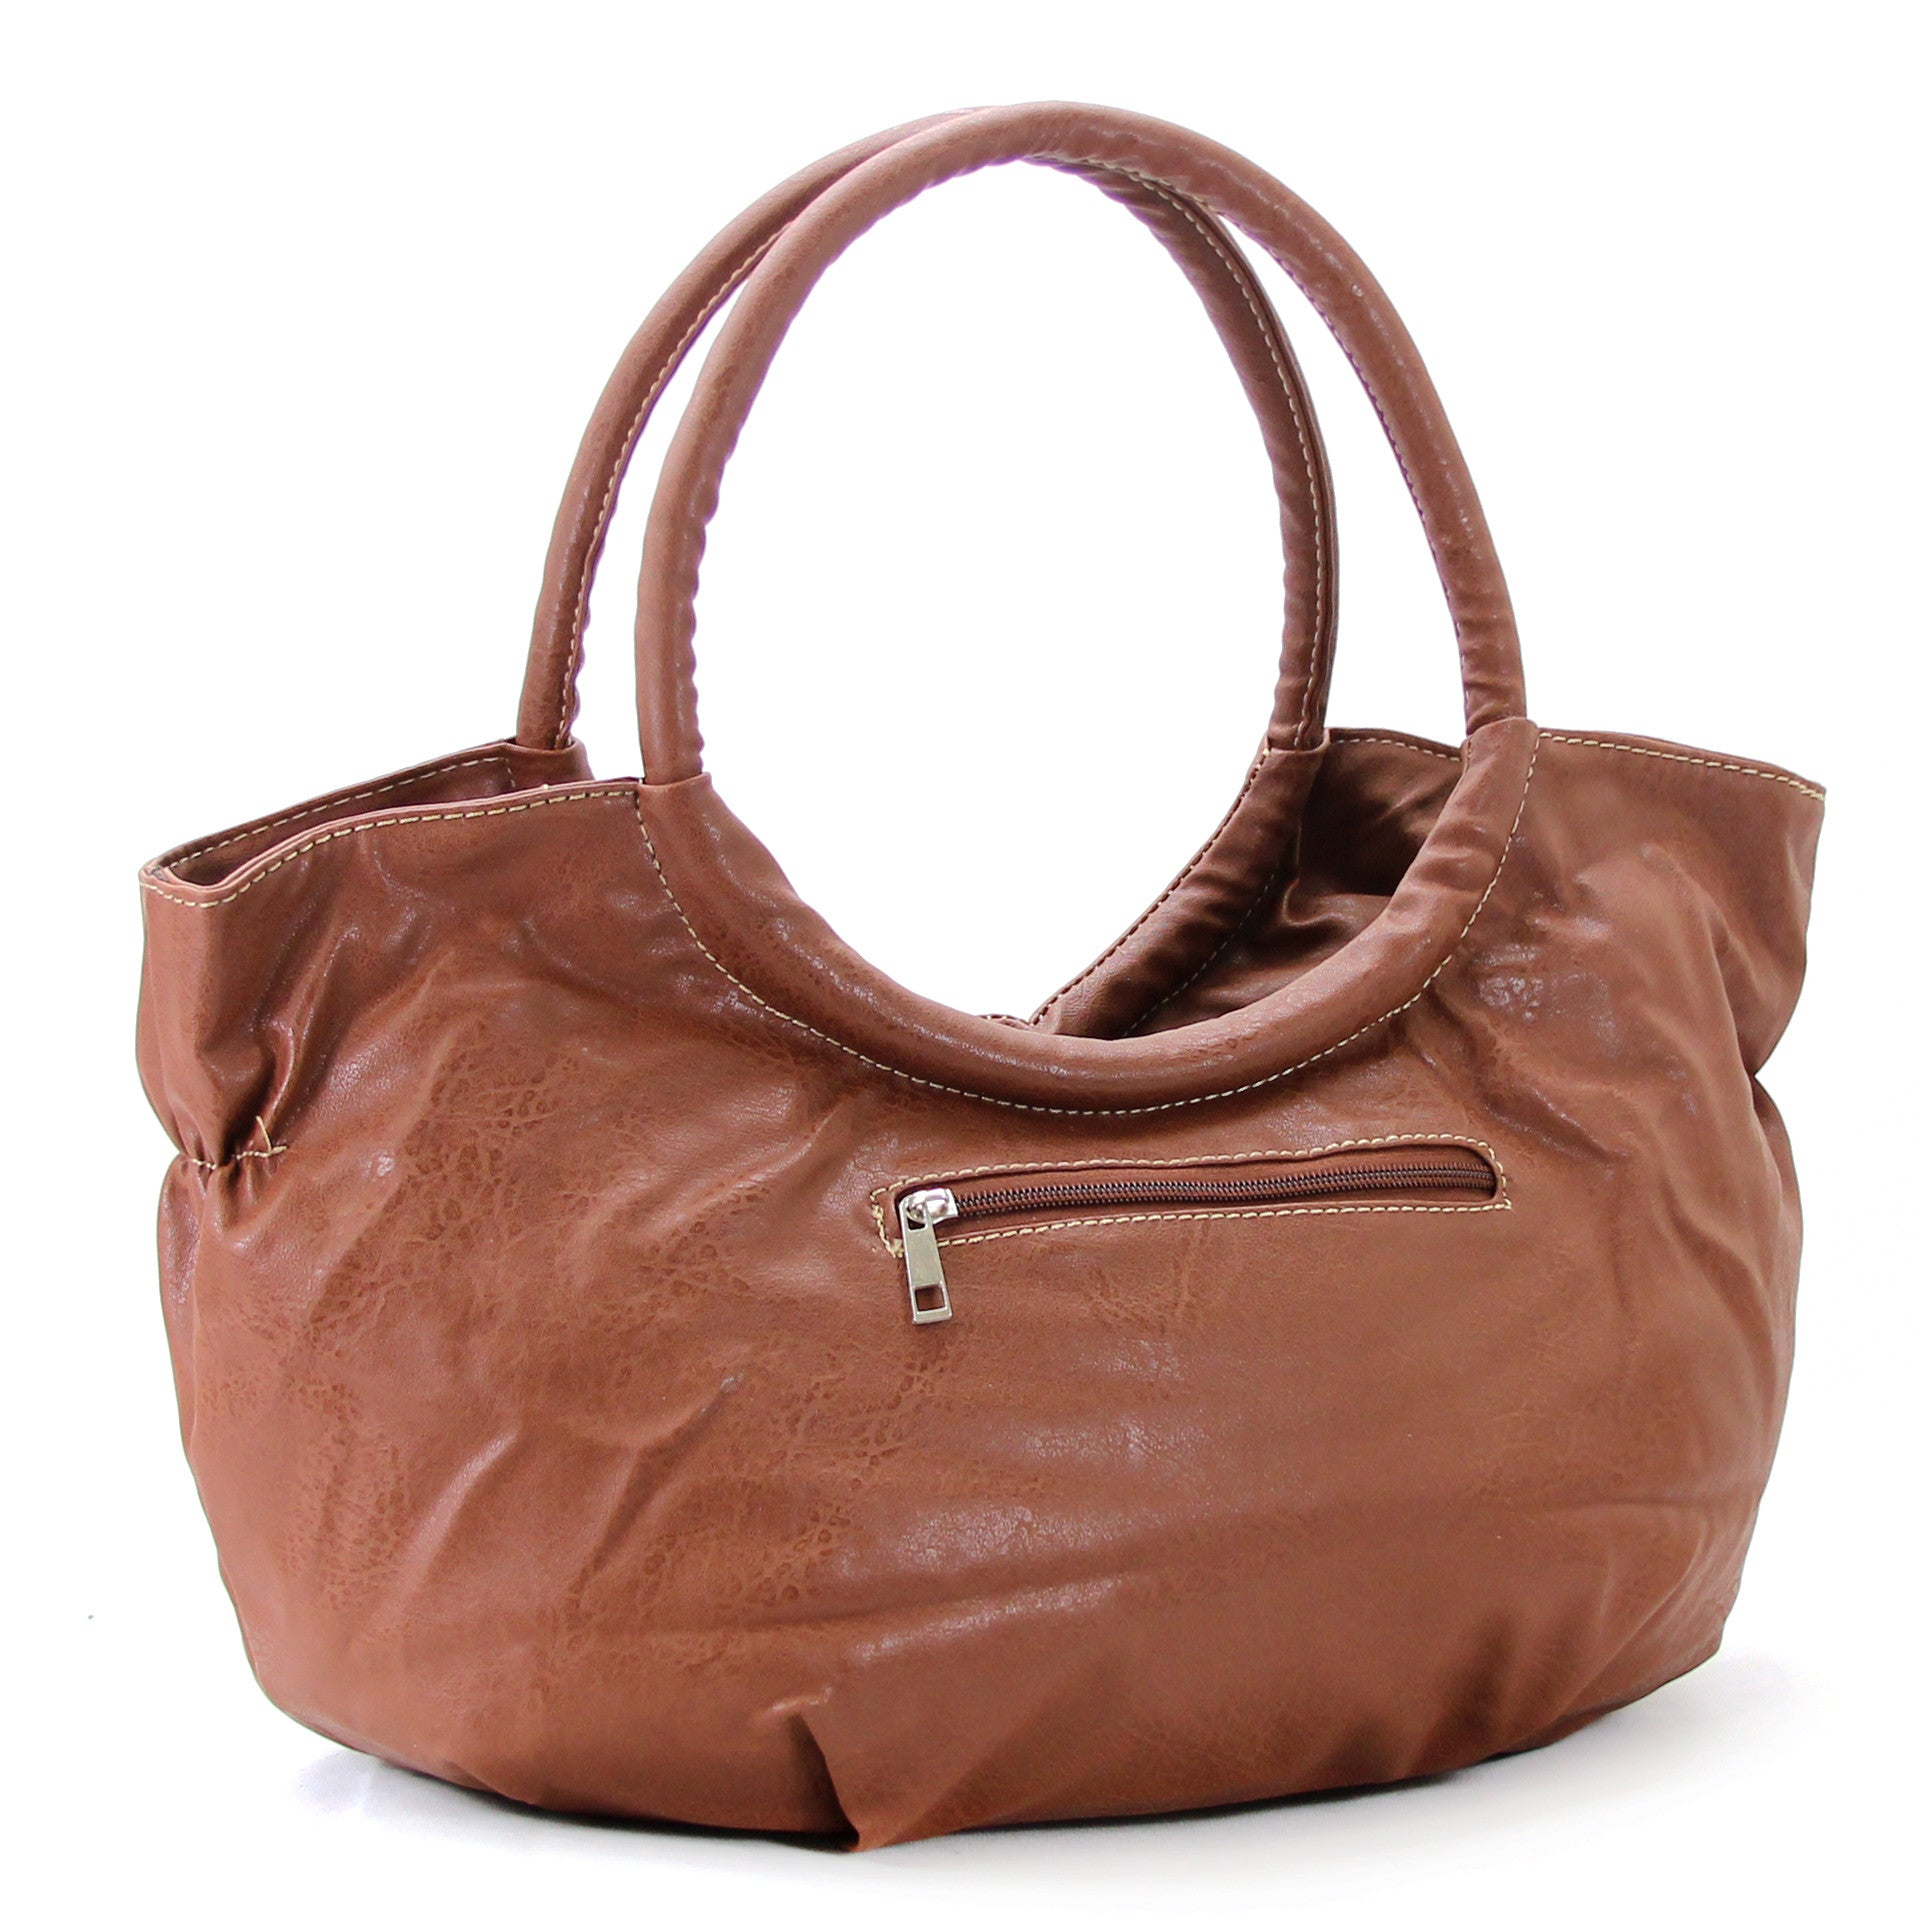 Everyday Trendy Flower Purse Handbag Tote Bag - Brown - Pop Fashion